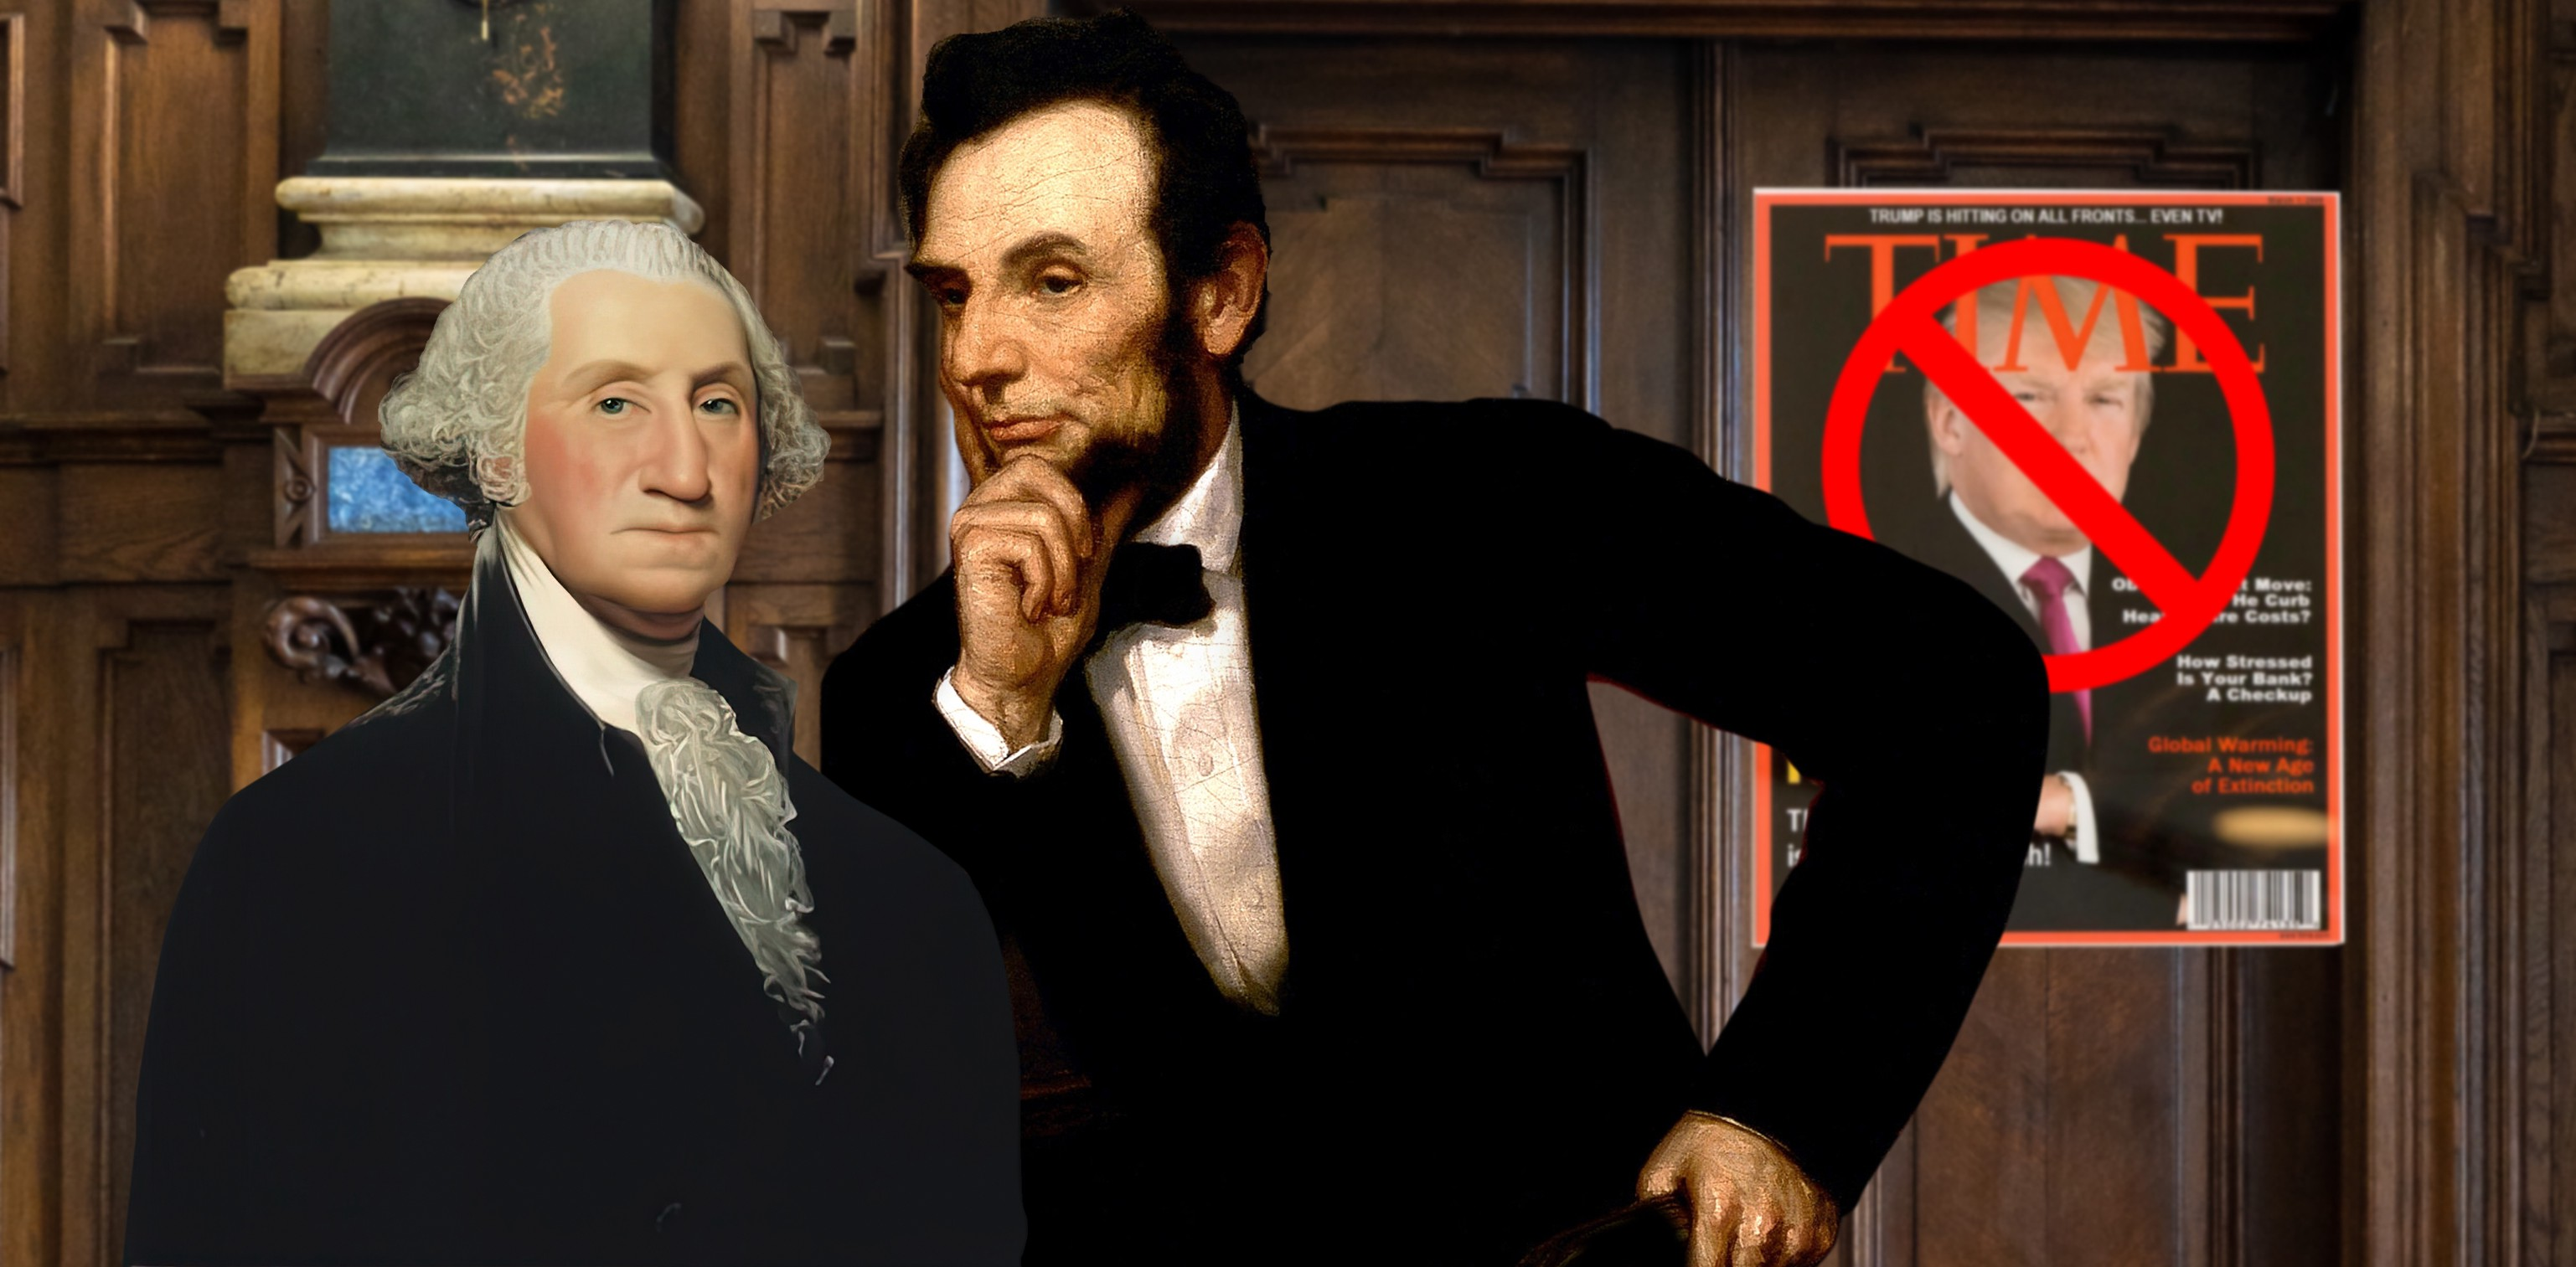 Lincoln and Washington in front of poster banning Trump